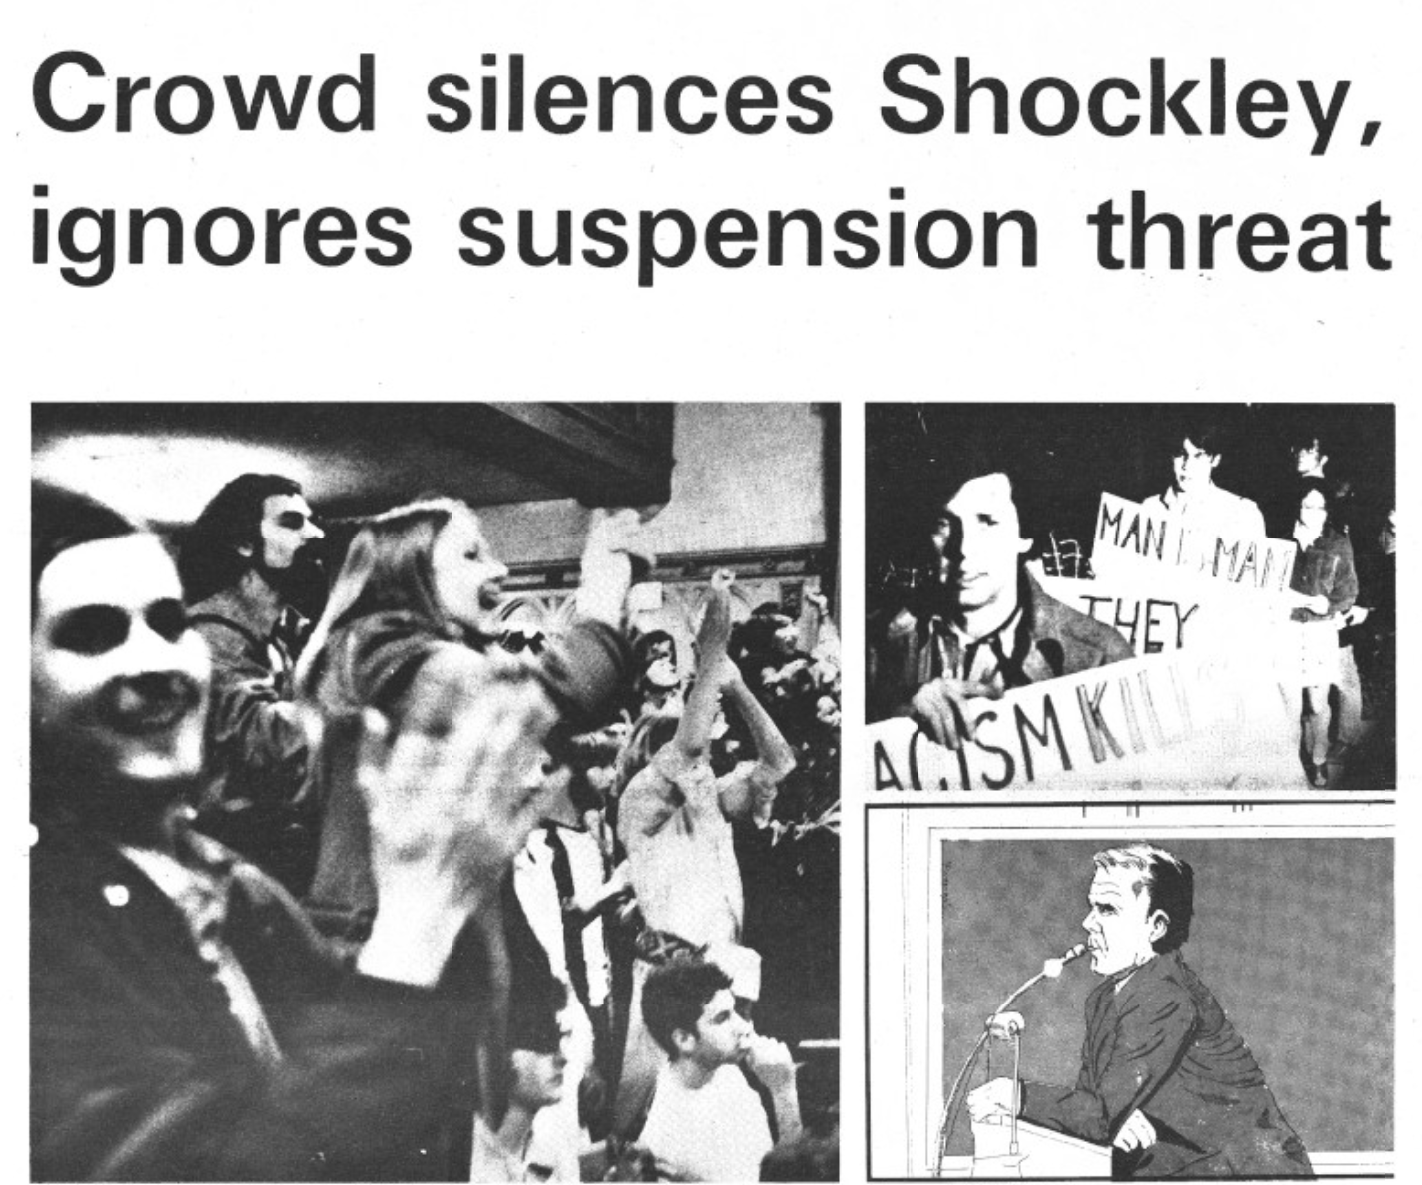 Protesters disrupt an event featuring controversial speaker William Shockley at Yale University on April 15, 1974.